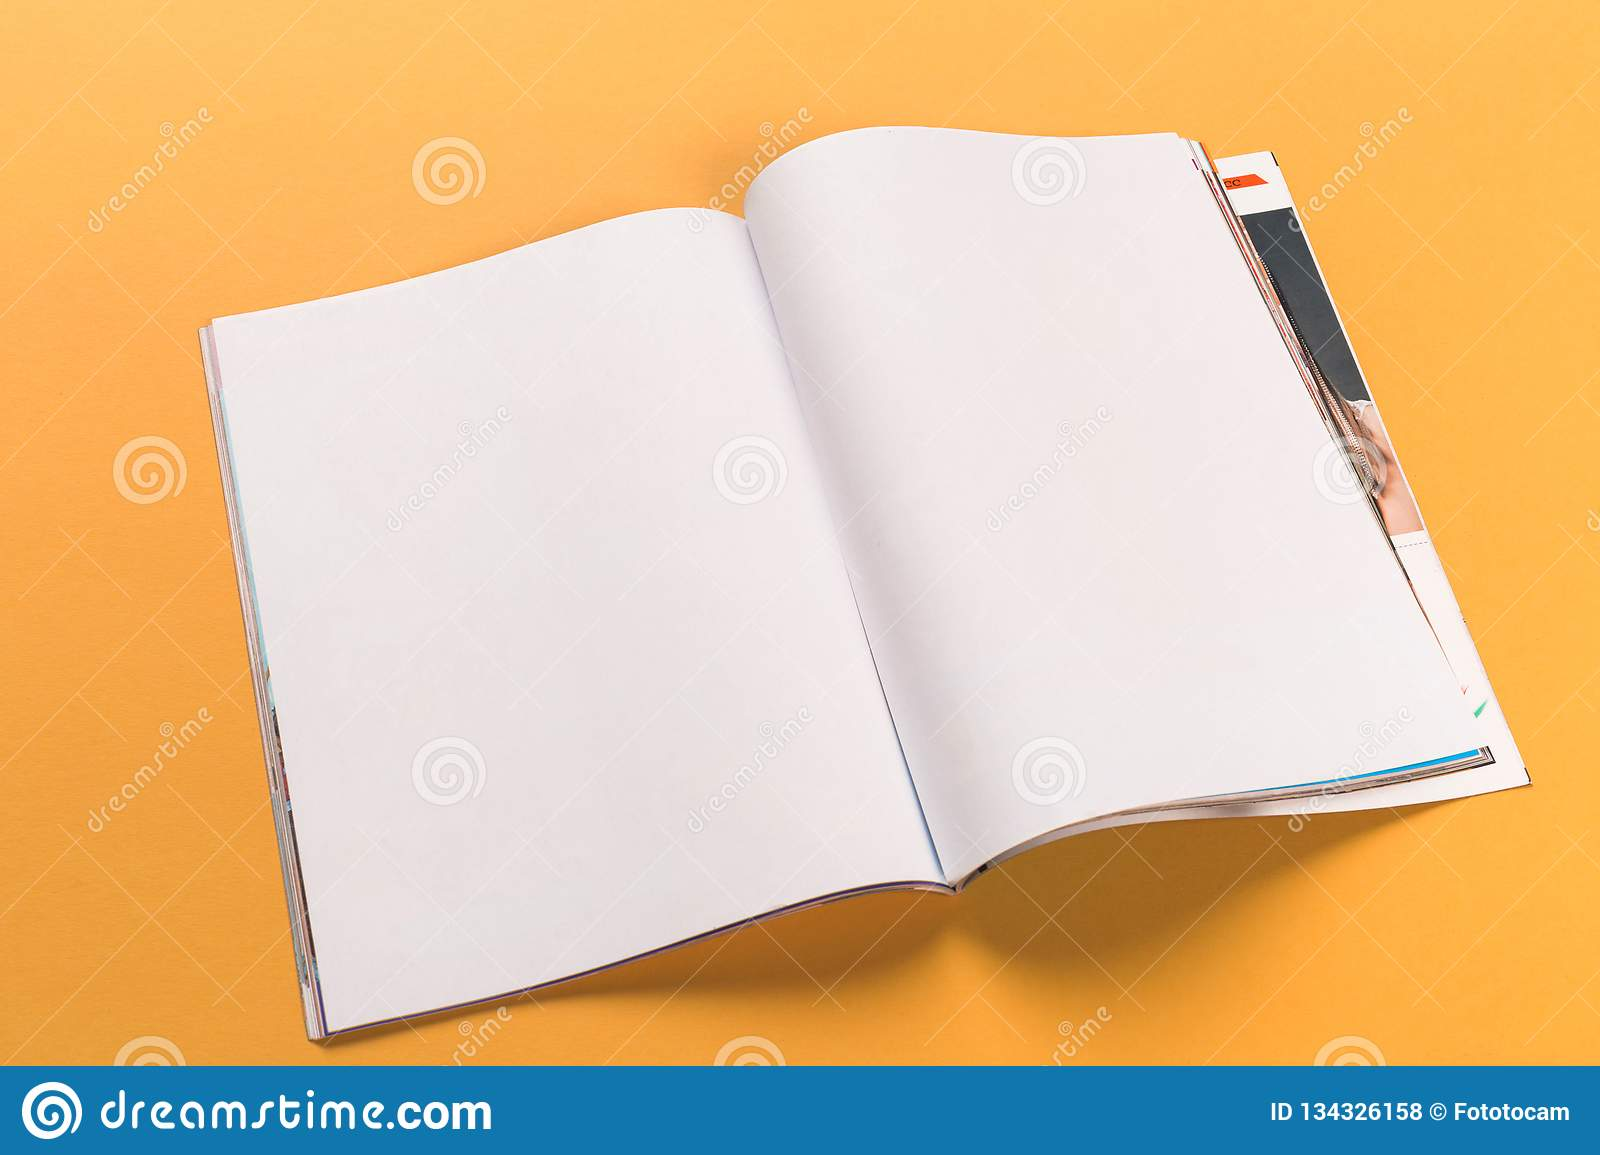 Opened magazine mock-up on orange background